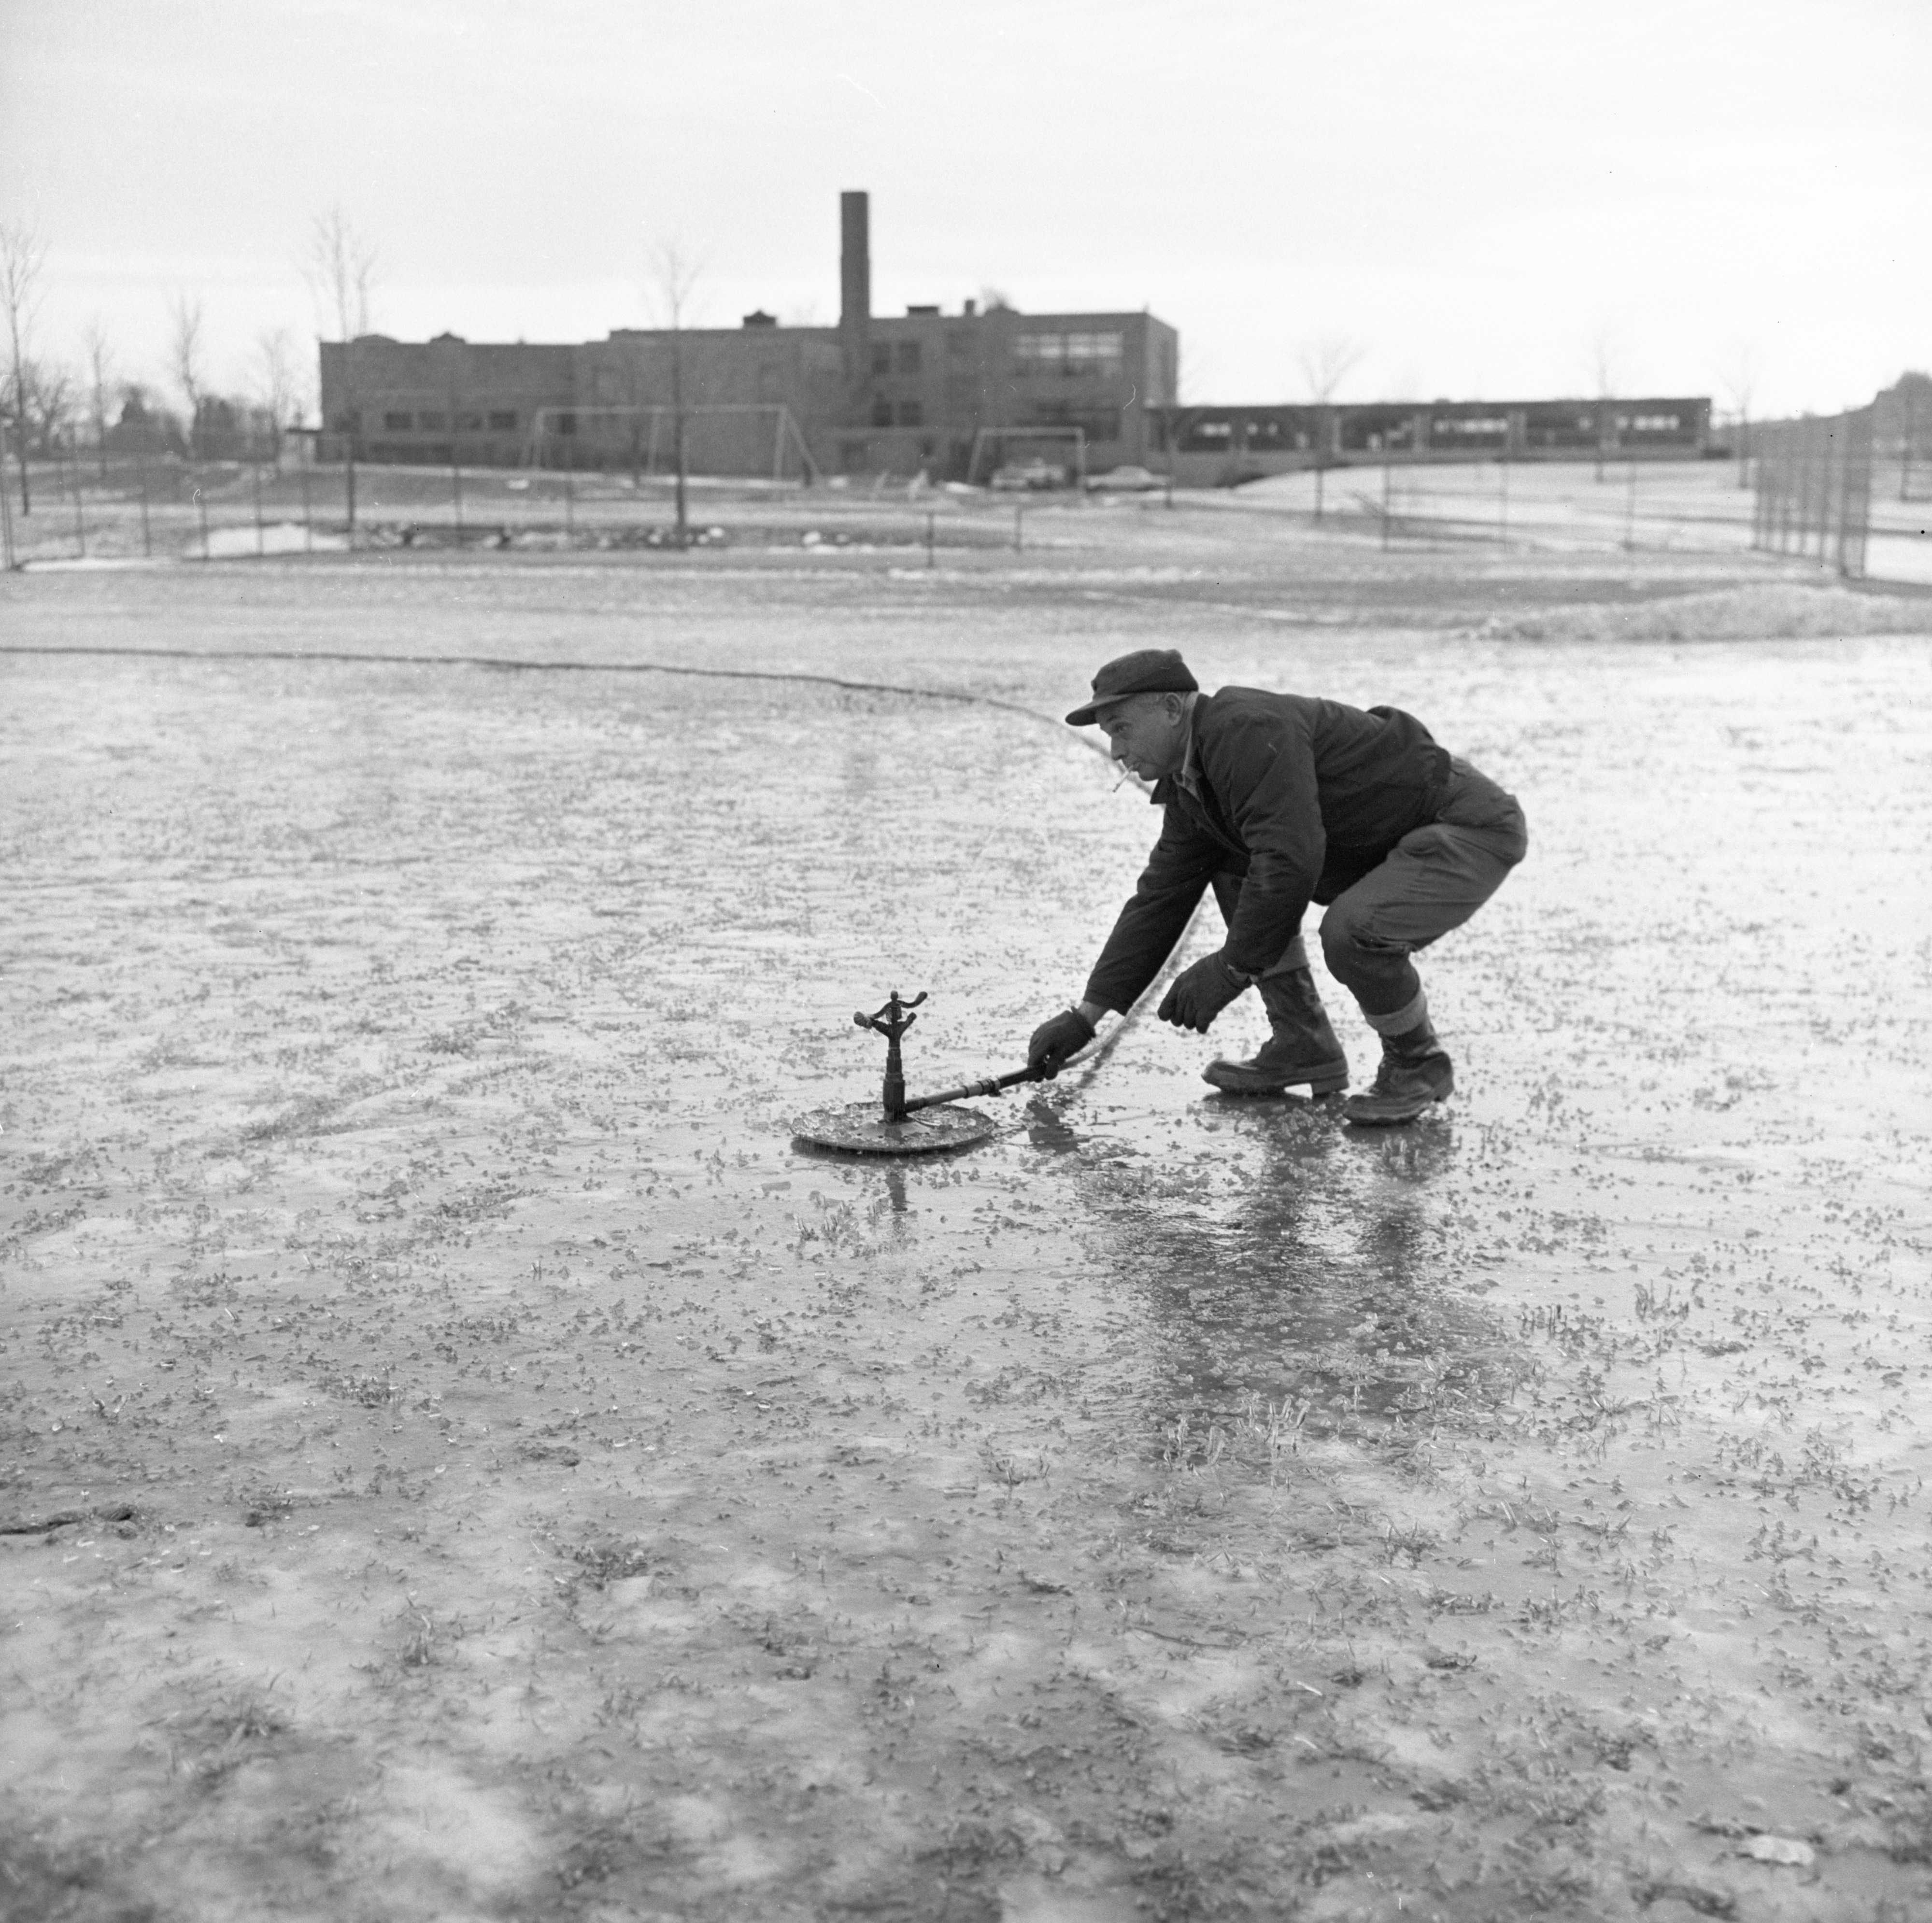 Stanley Ehnis Sets Up A Sprinkler On The Northside School Ice Rink, December 1965 image